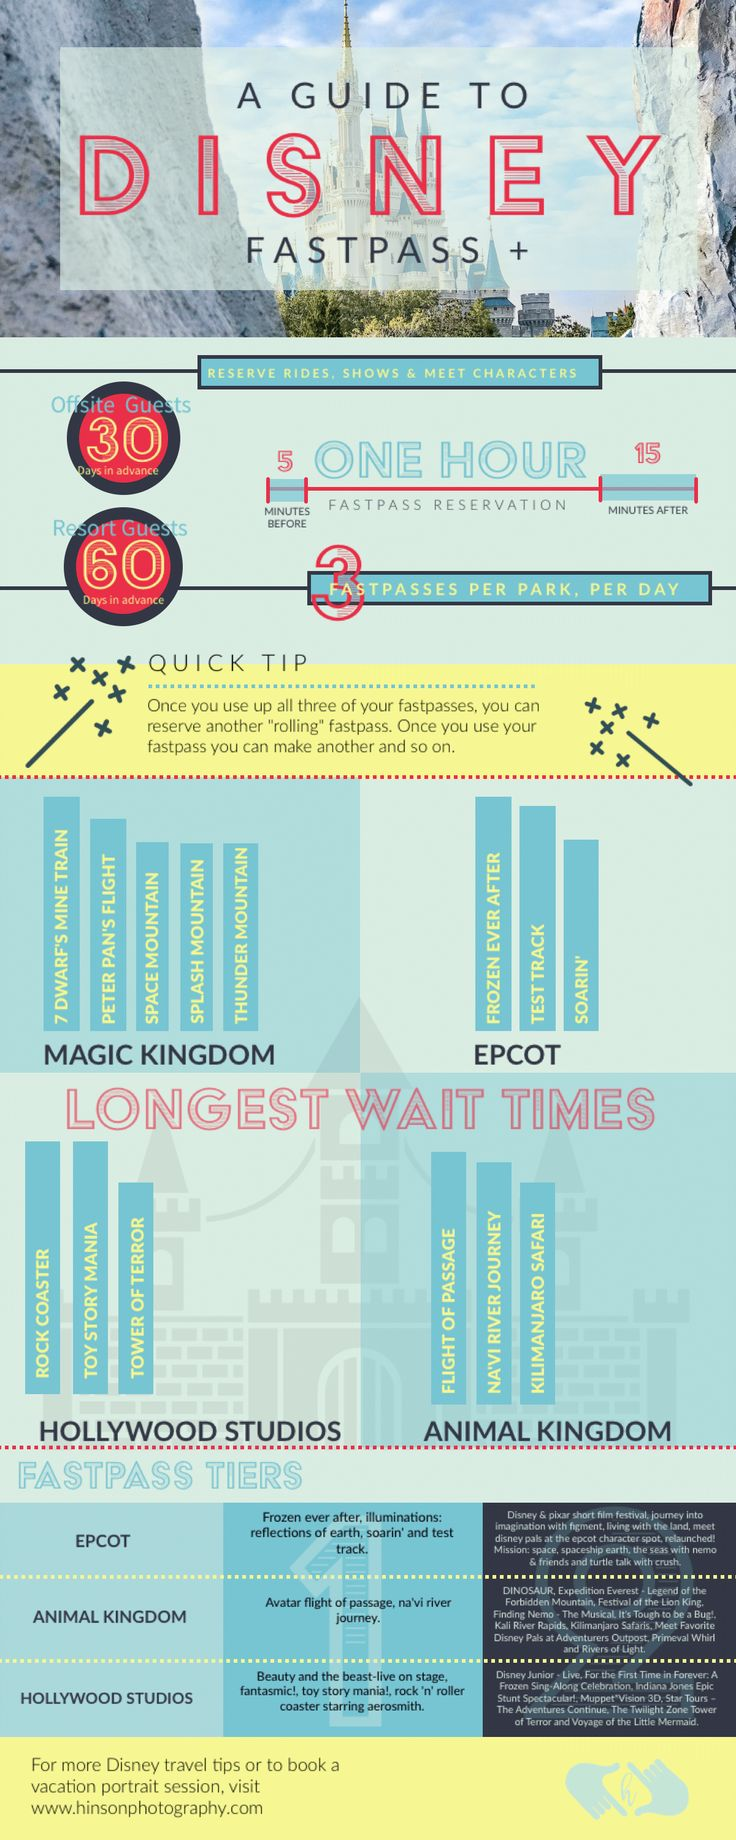 Disney World Orlando: Fastpass + overview with helpful tips to cut down wait times and maximize your trip to Orlando, FL